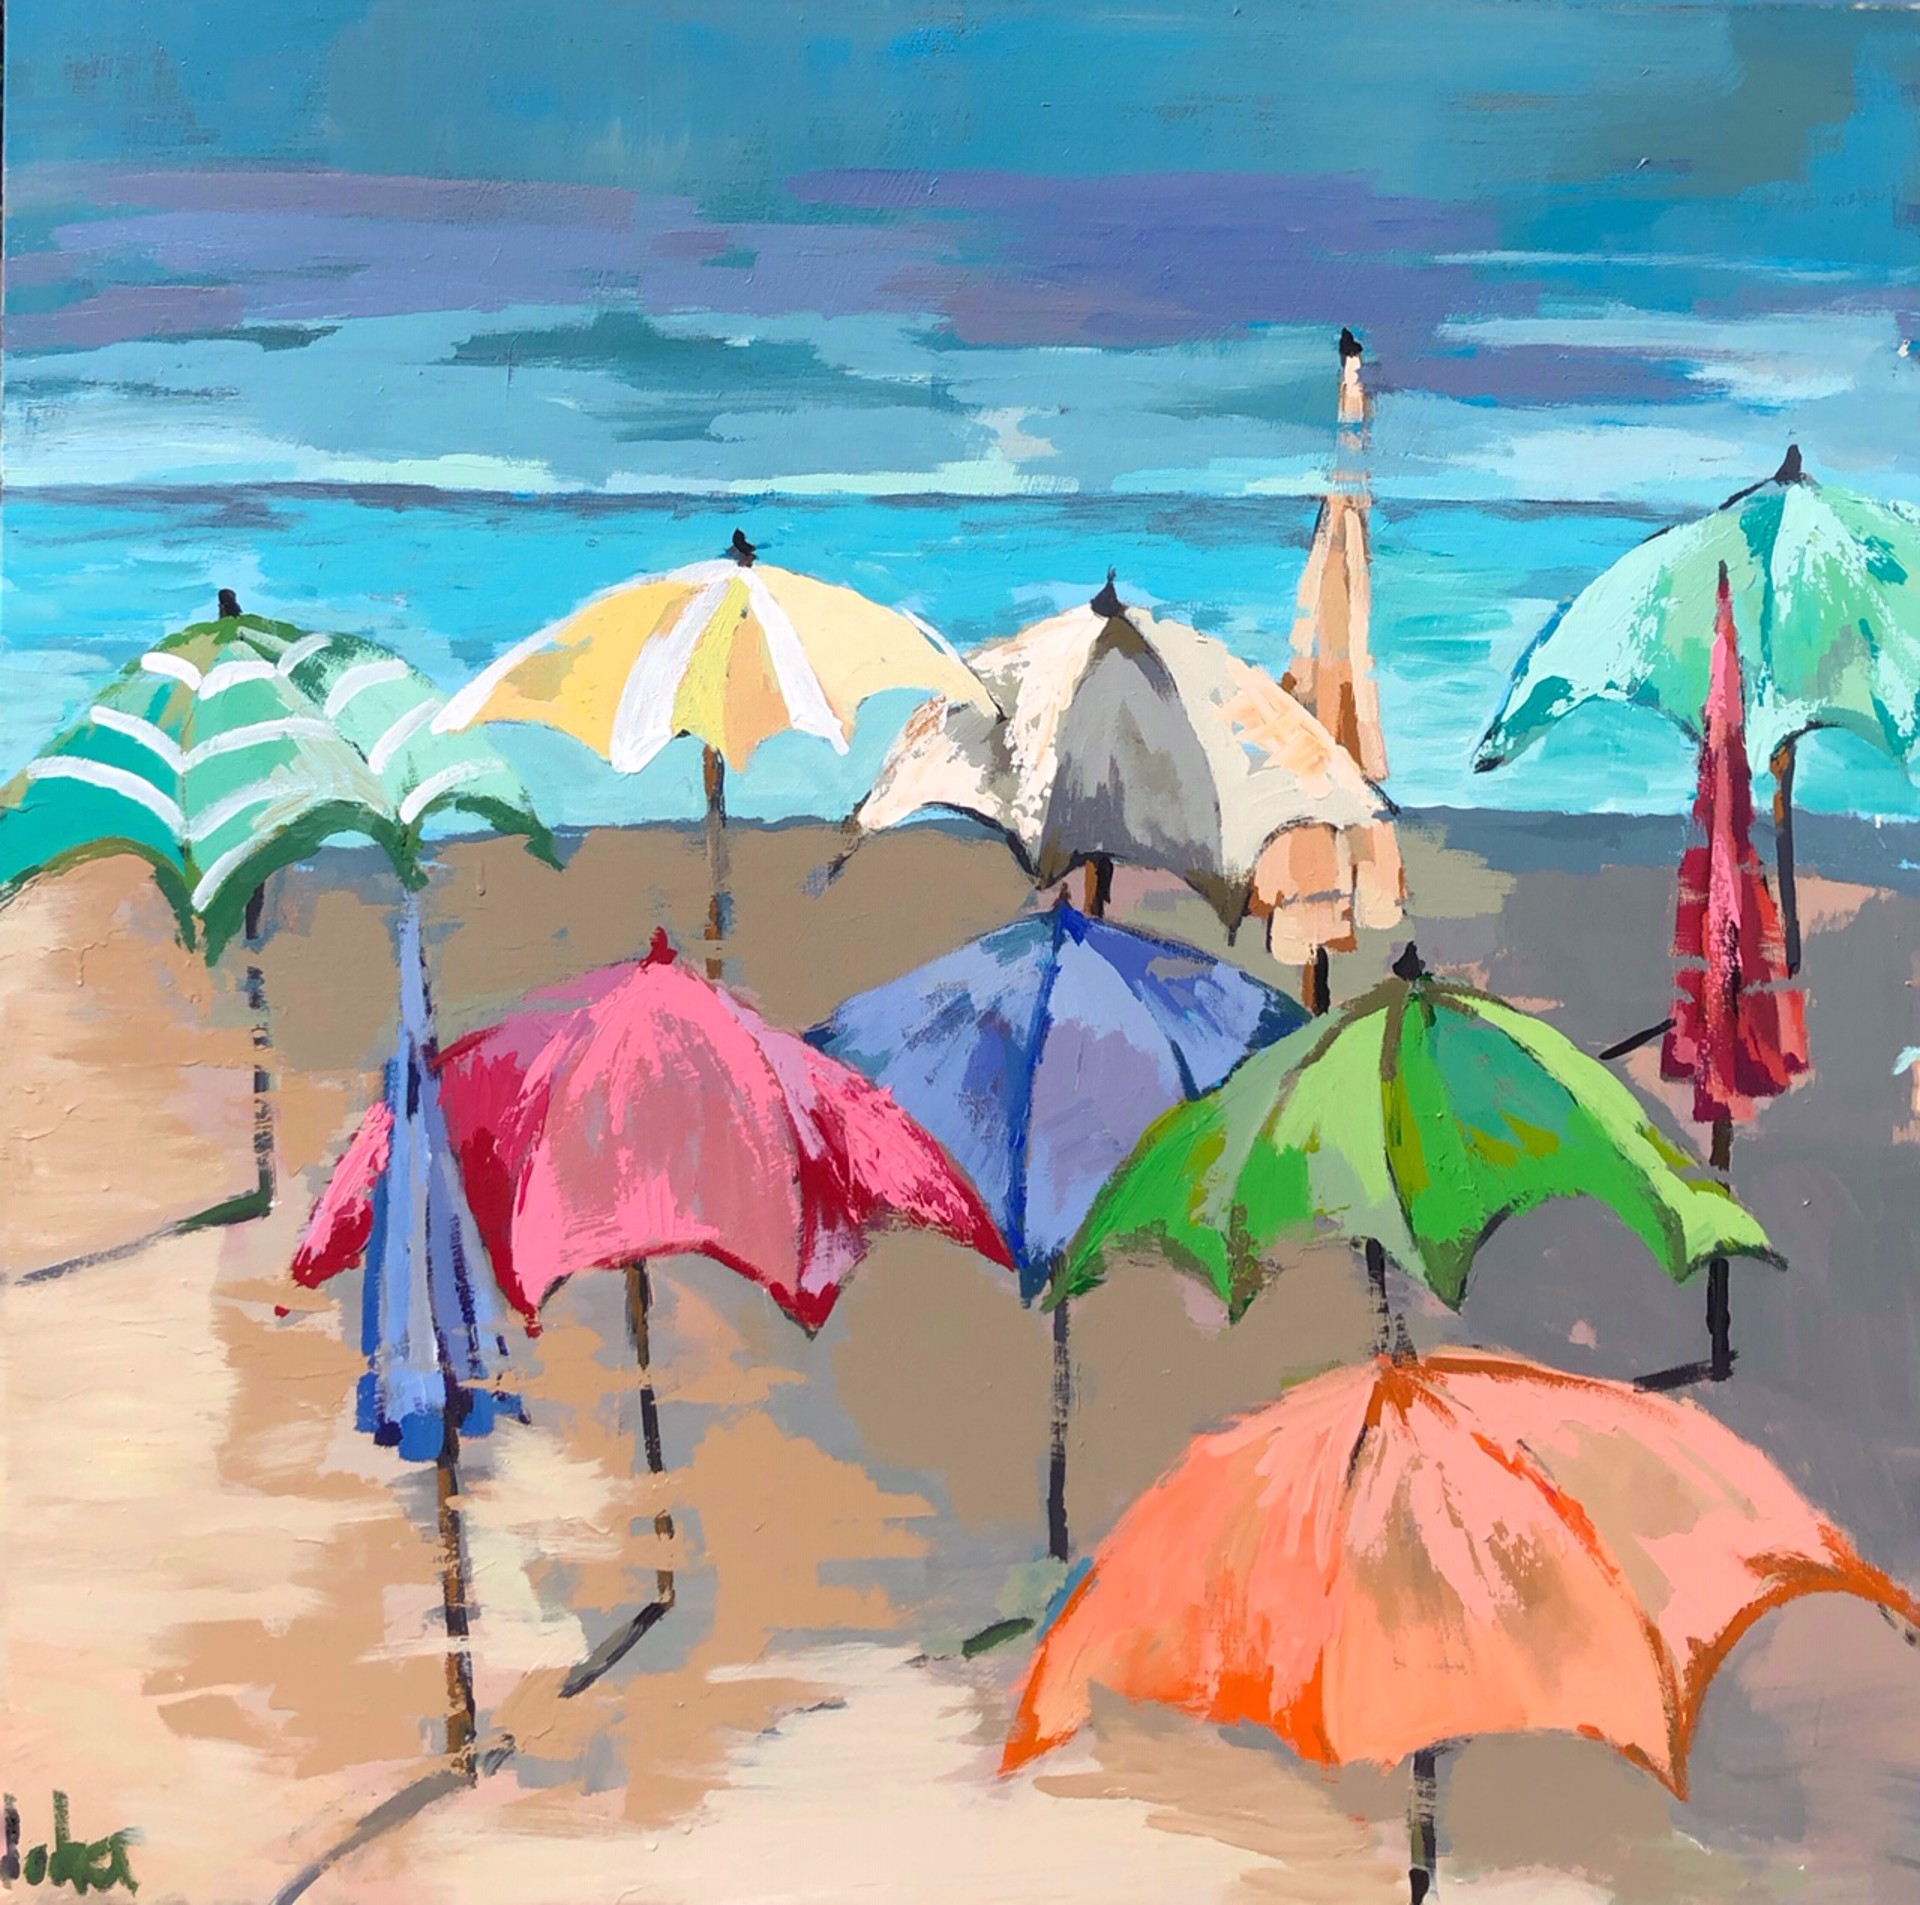 Umbrella Sea by Gary Bodner